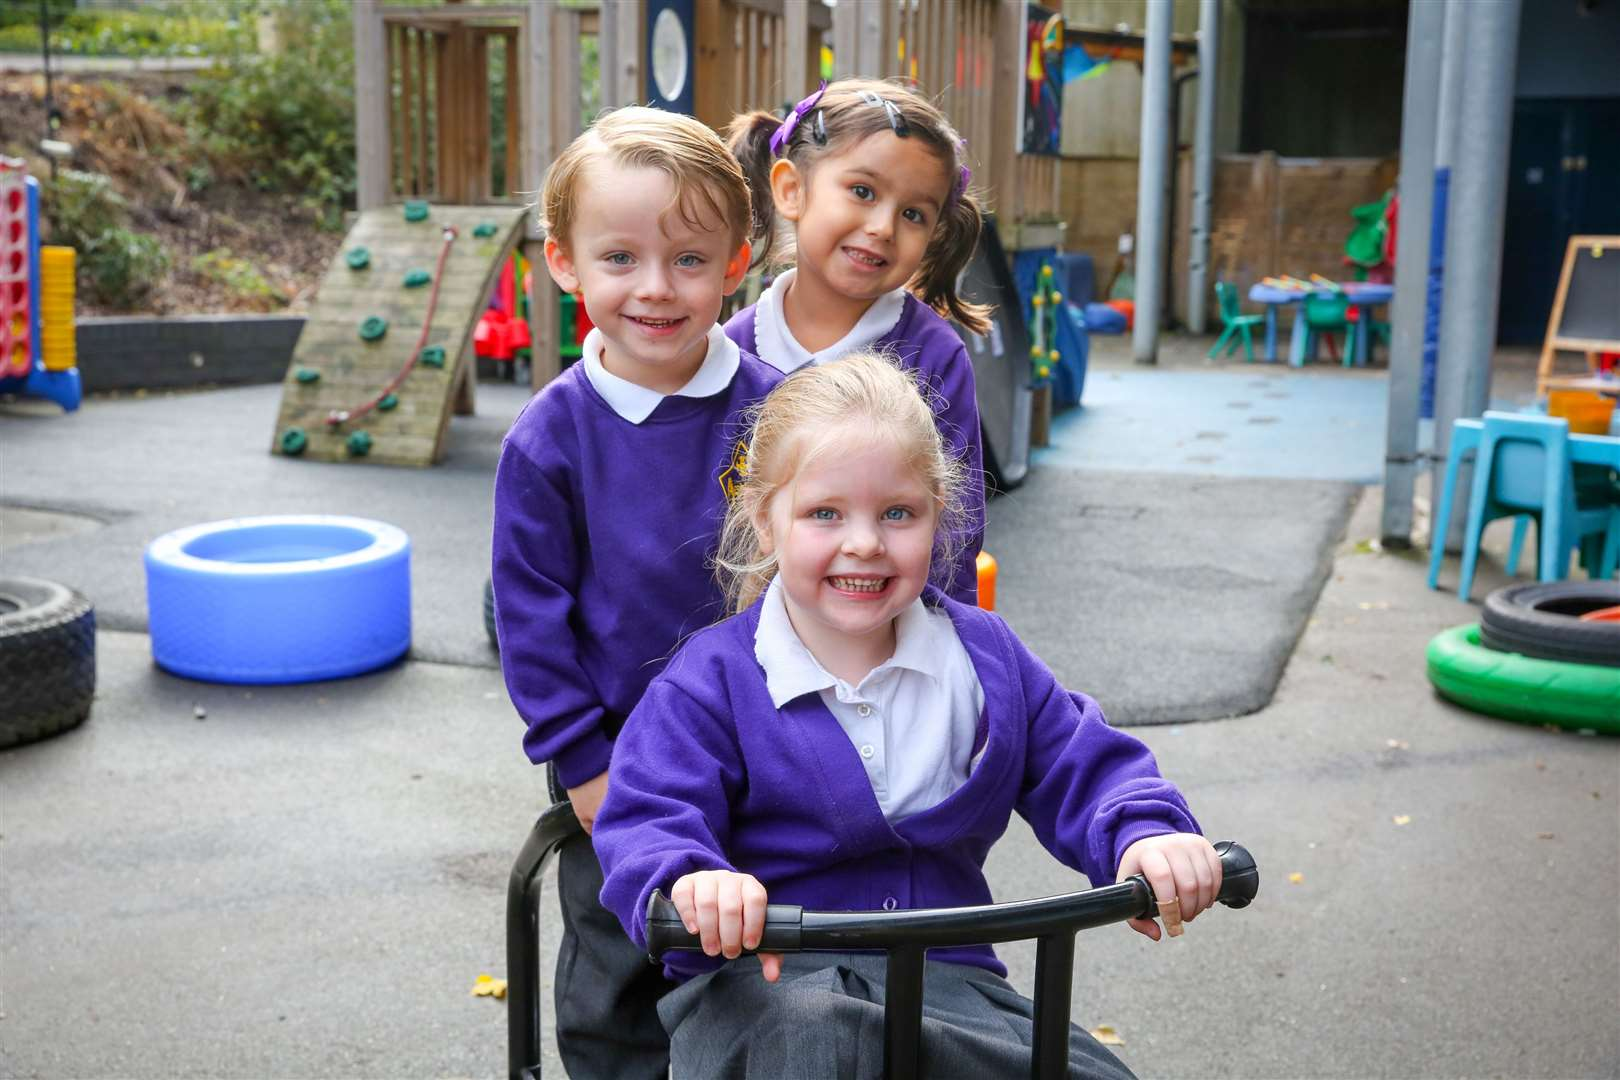 Our photographs have been capturing reception pupils as they settle in at school